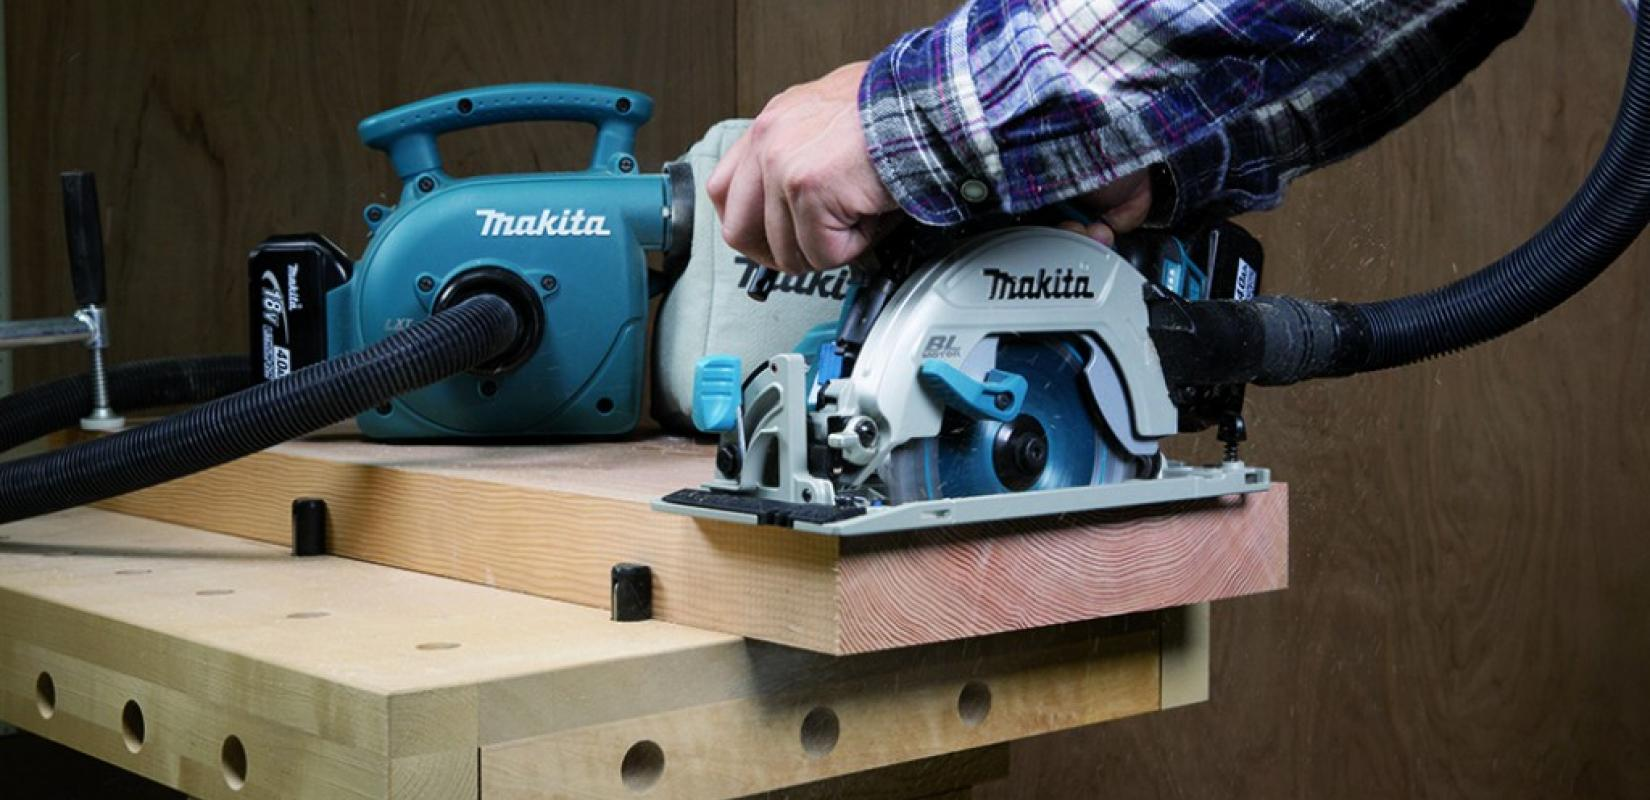 makita ajoute une nouvelle scie circulaire dhs680z sa plateforme 18 v zone outillage. Black Bedroom Furniture Sets. Home Design Ideas